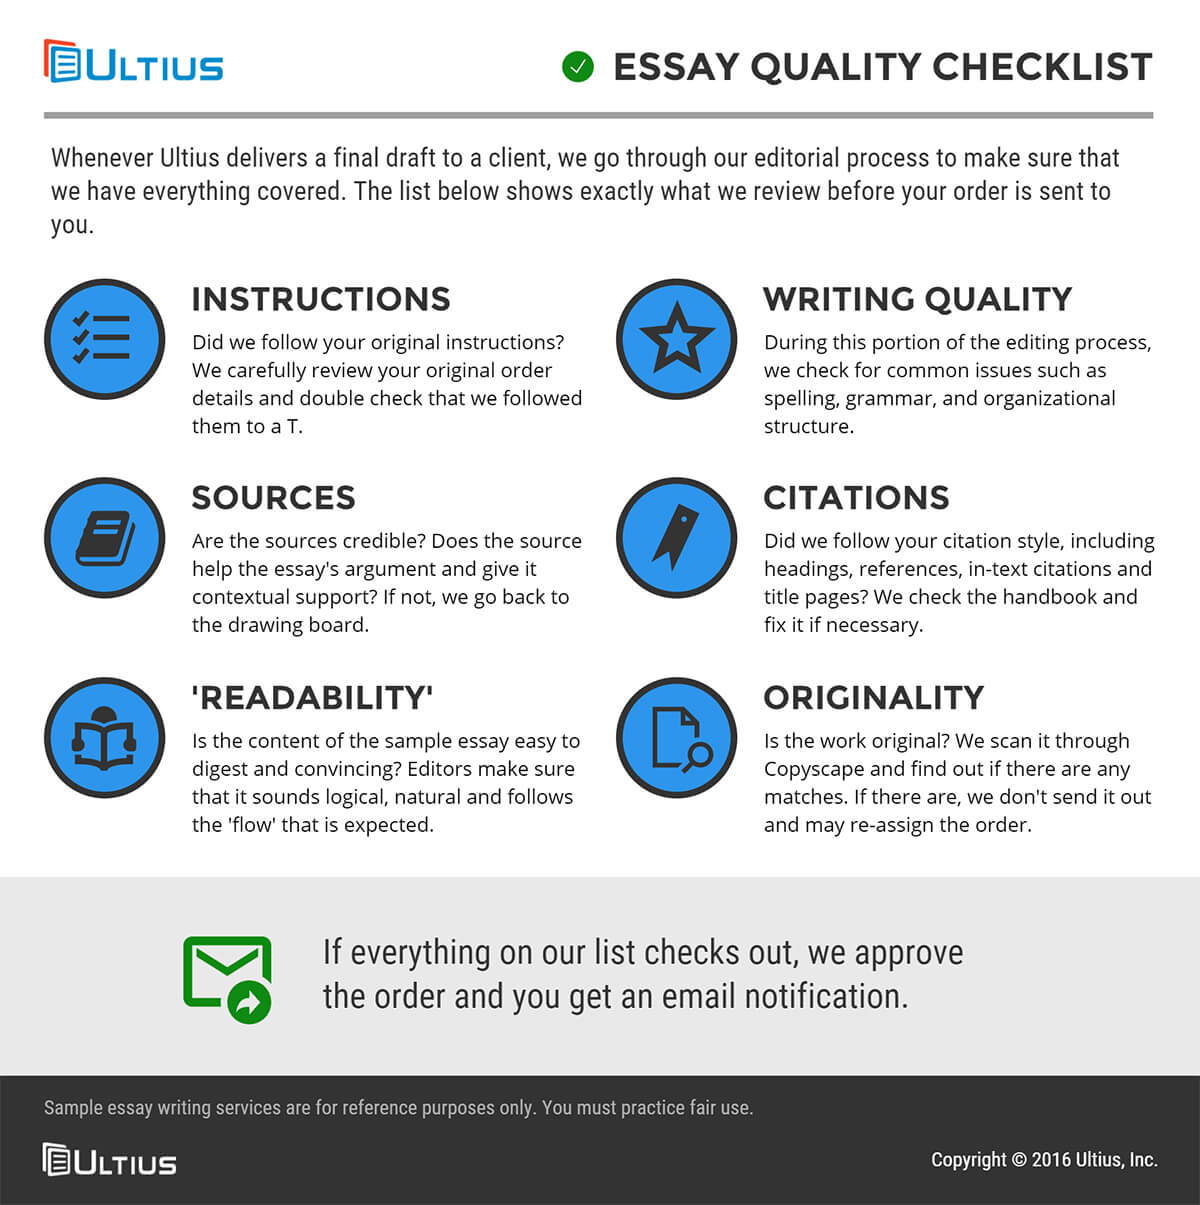 001 Essay Online Example Quality Unbelievable Shopping Writing Jobs For Students Writer Full